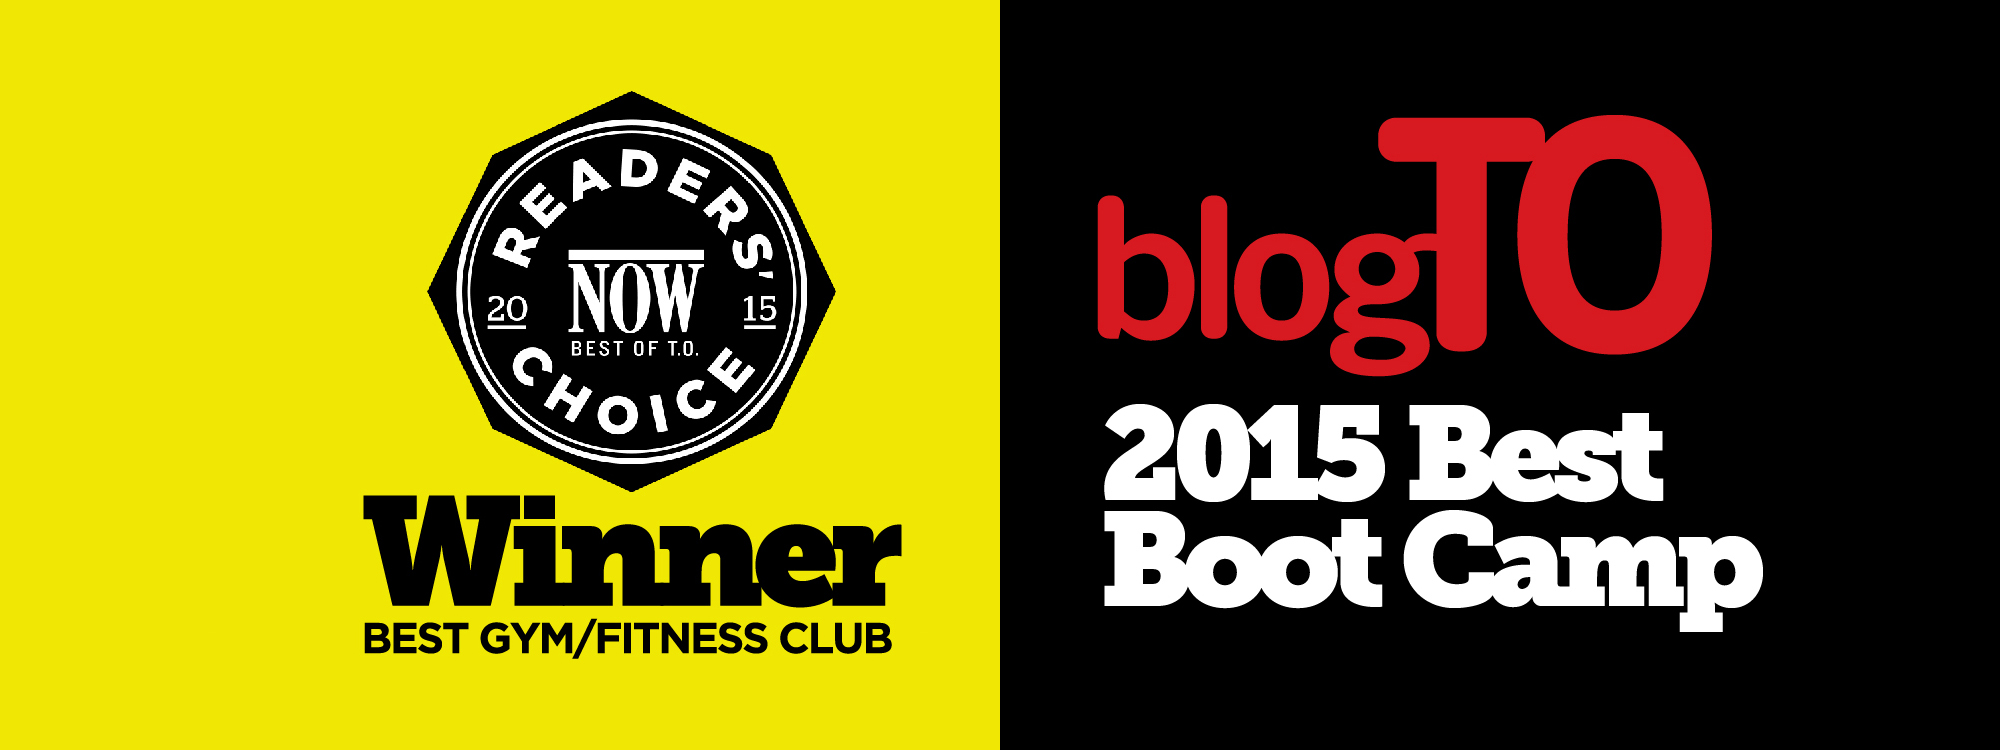 blogto_bestbootcamp_2015_webtitle_Edit